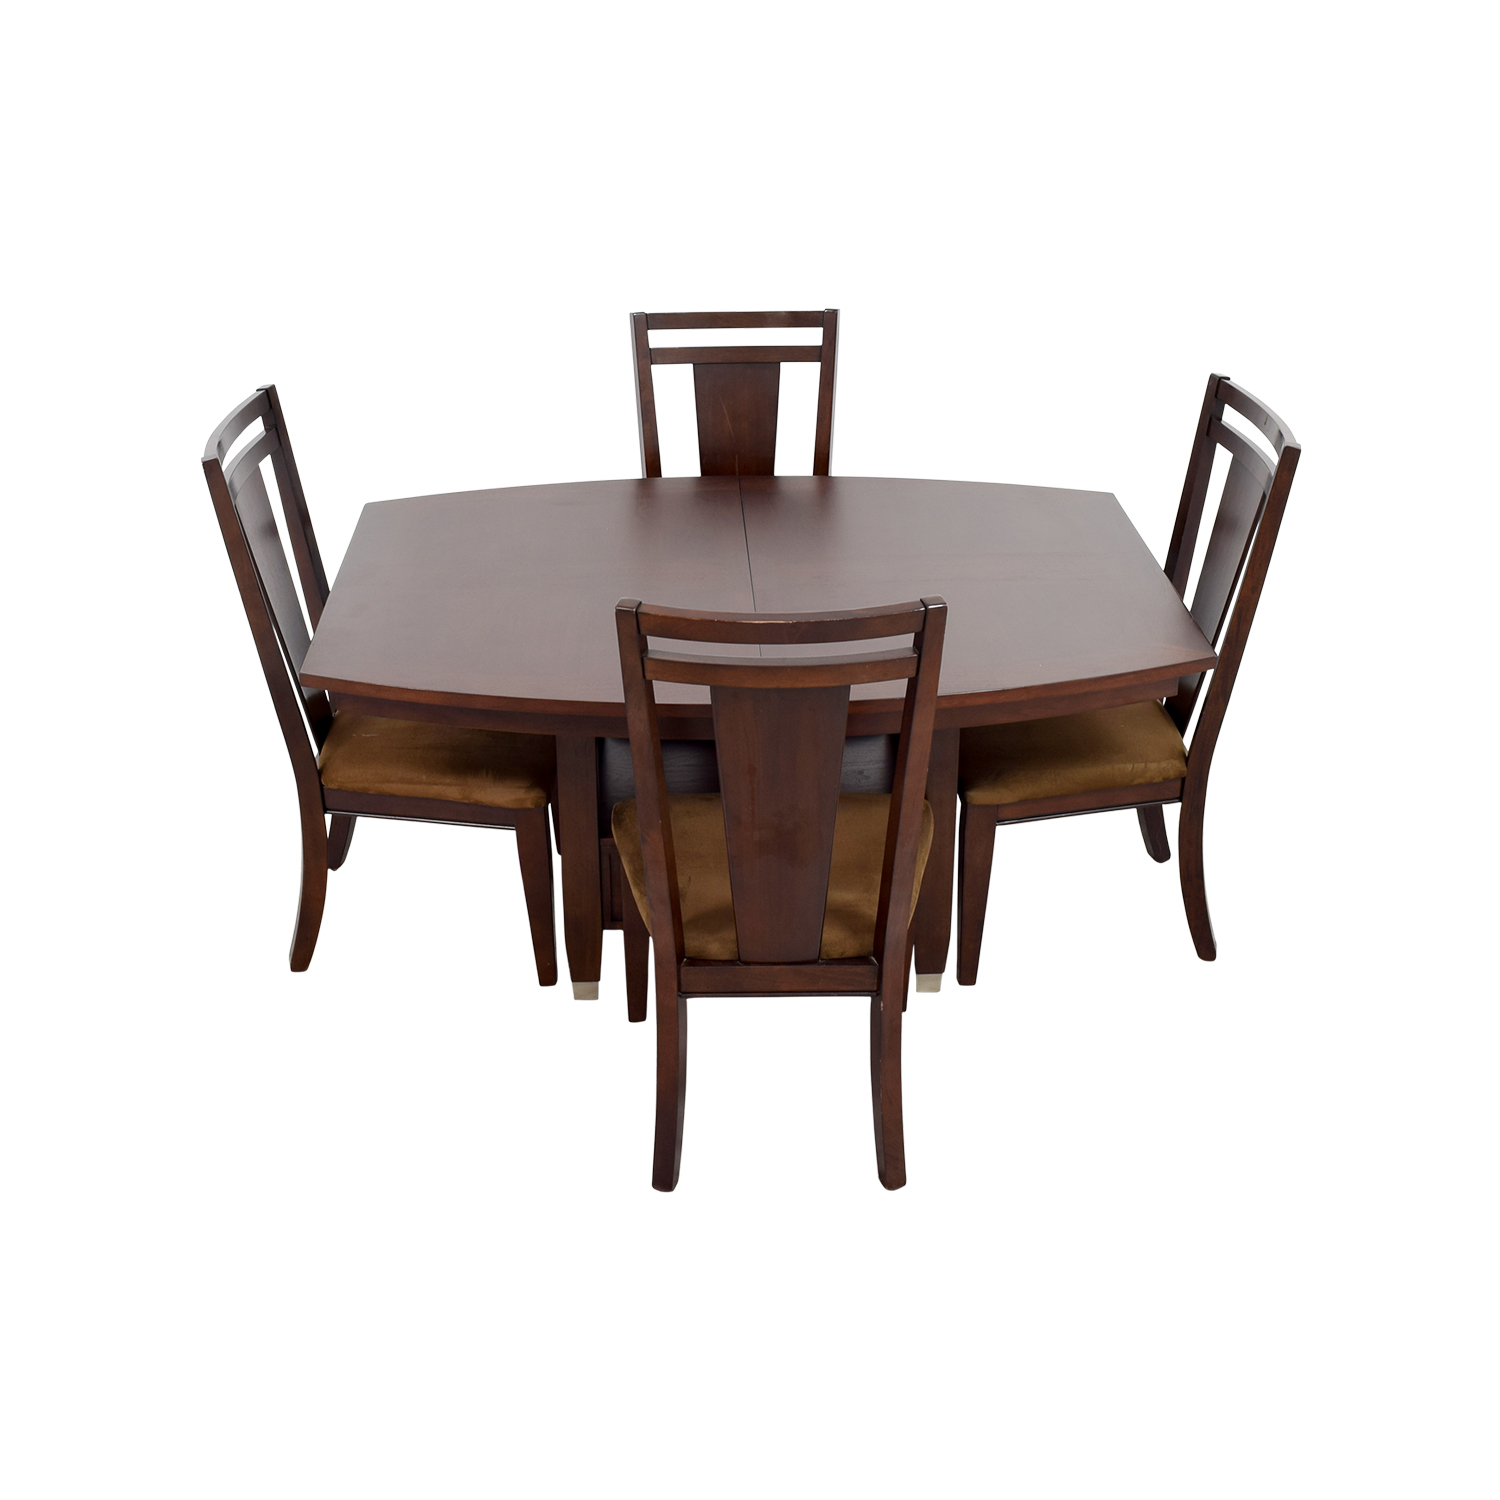 Broyhill Broyhill Wood Dining Table Set / Tables